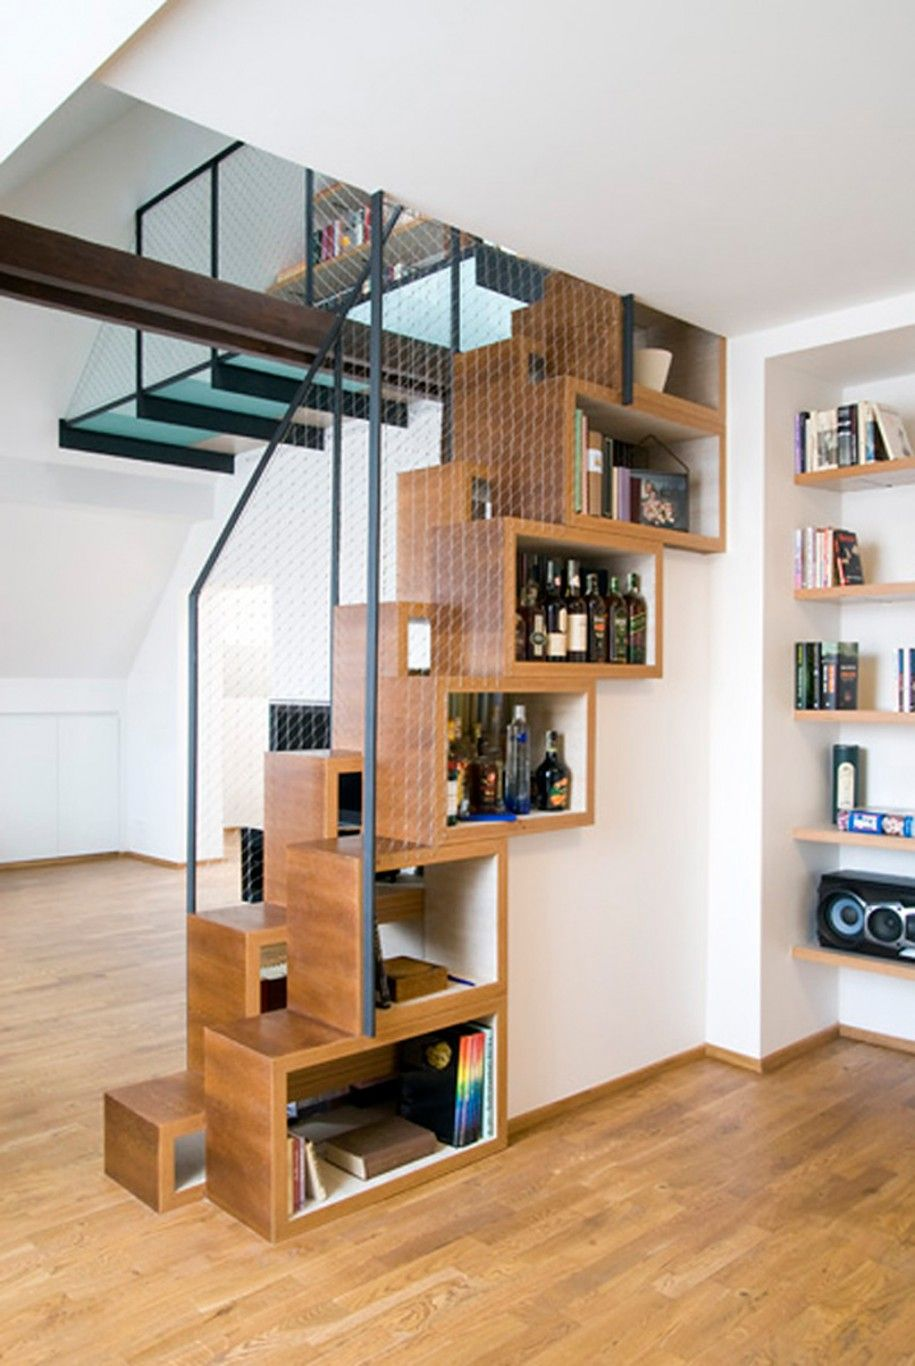 terrific staircases for small spaces surprising unique and smart saving space ideas staircase and storage interior design for various small and wide spaces - Home Design Small Spaces Ideas